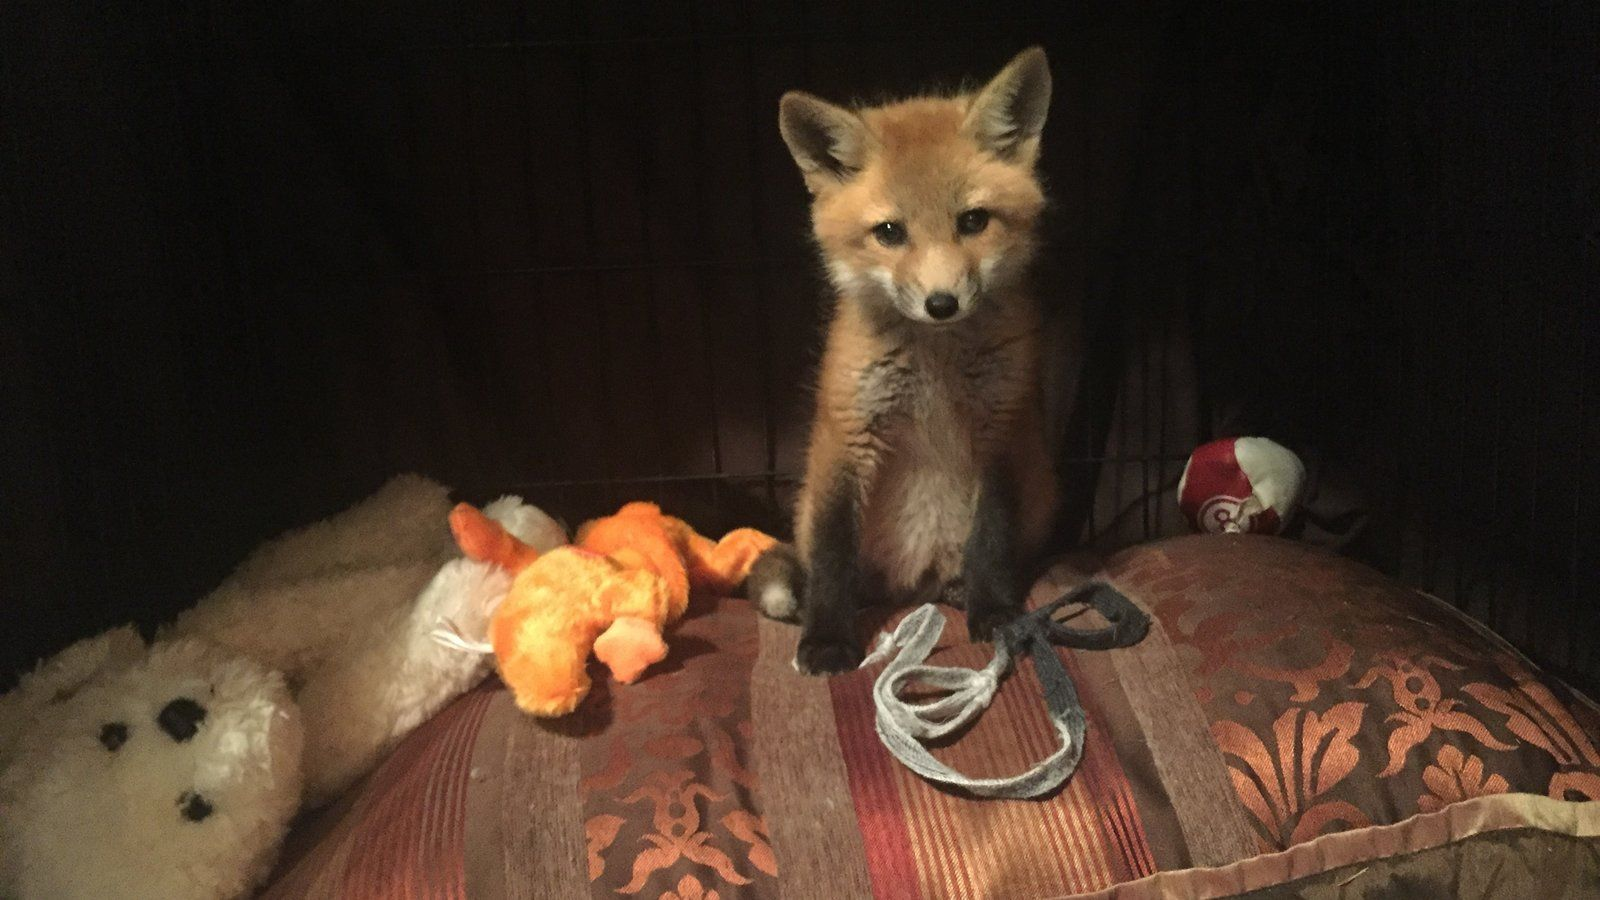 PLEASE SIGN TORY'S PETITION! Cruelty Free Fox species